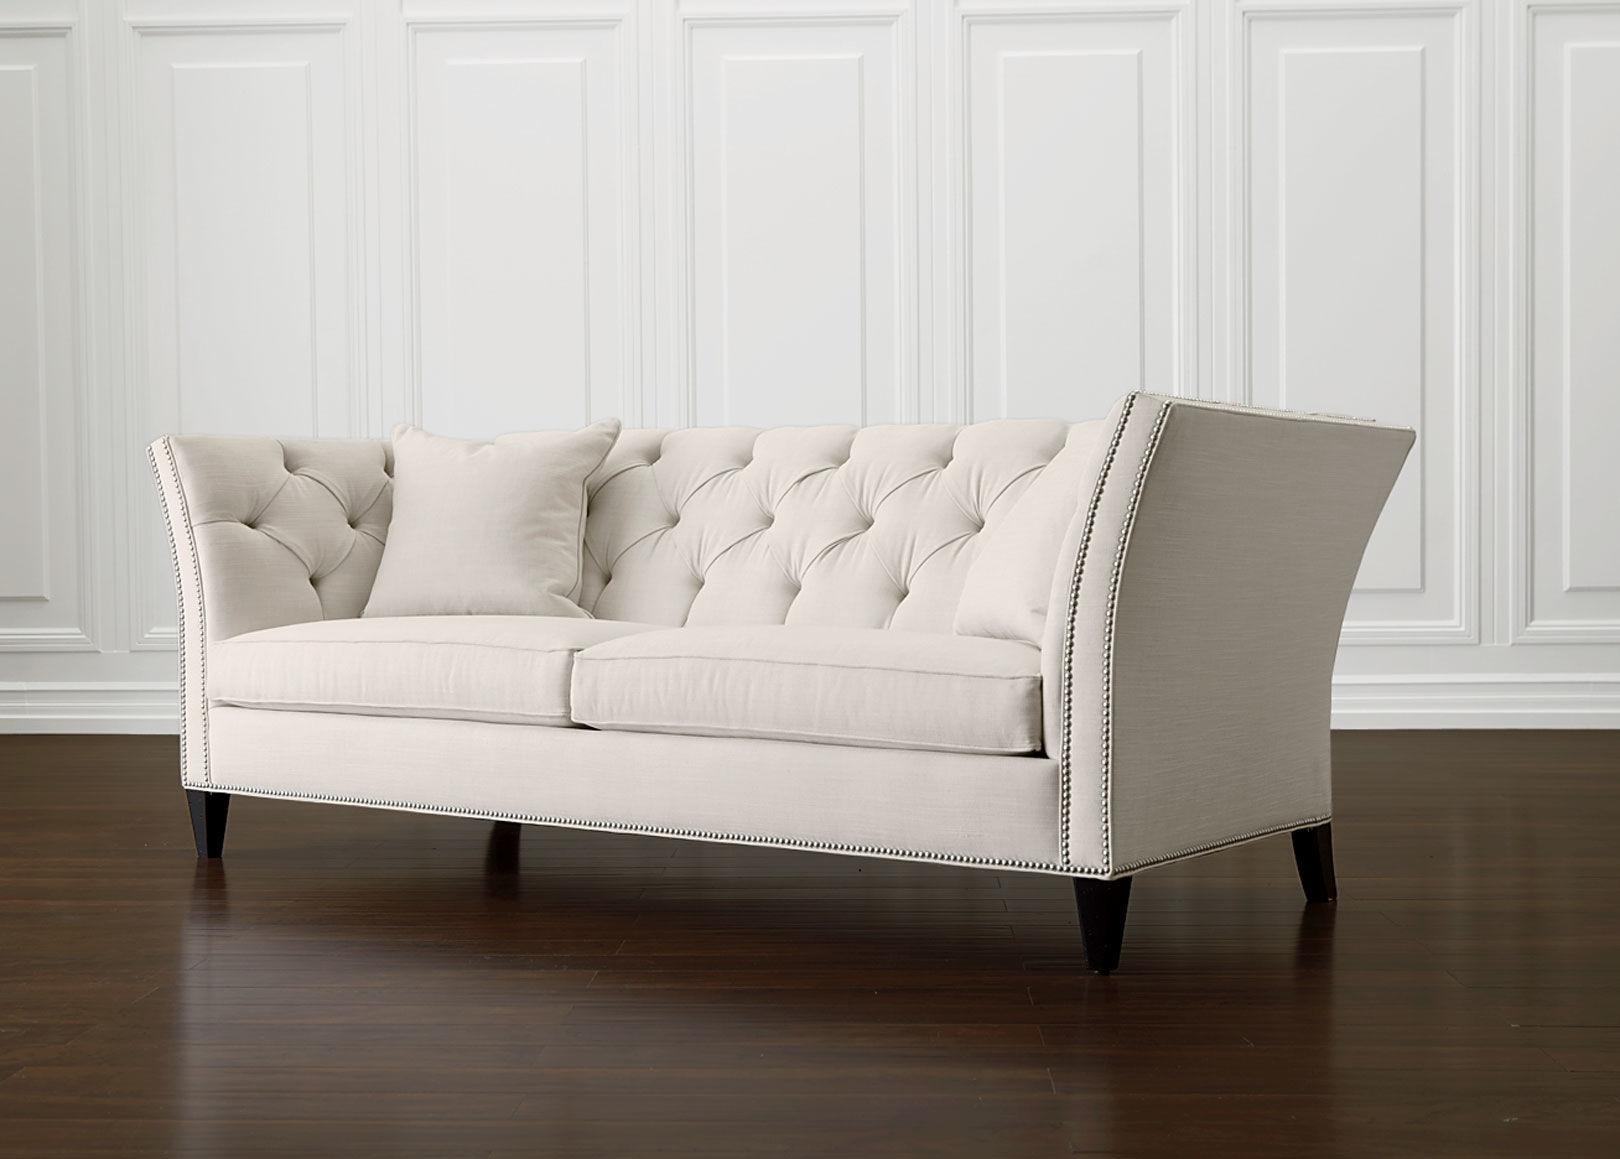 Best Ethan Allen Sleeper Sofas | Homesfeed Intended For Ethan Allen Sofas And Chairs (Image 6 of 20)